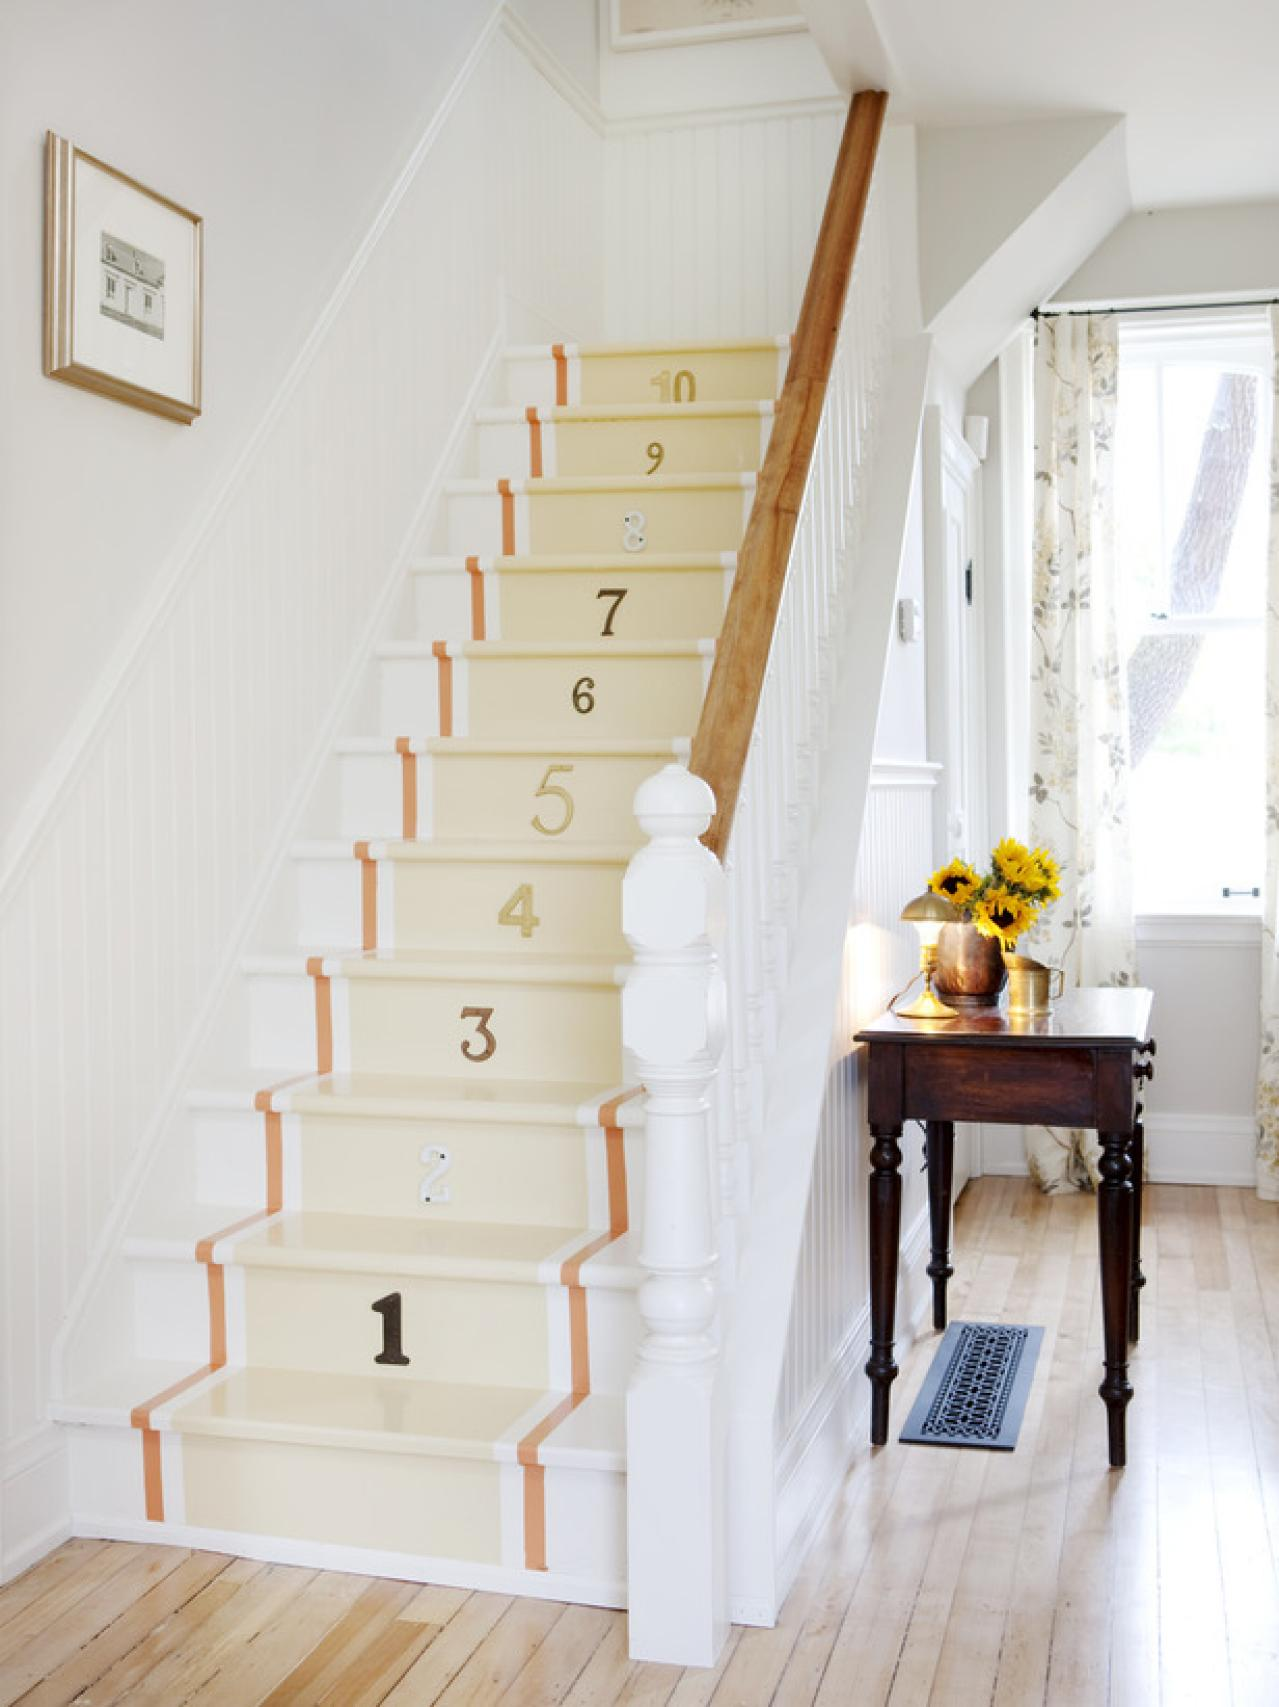 Staircases In Homes Stunning Staircases 61 Styles Ideas And Solutions Diy Network